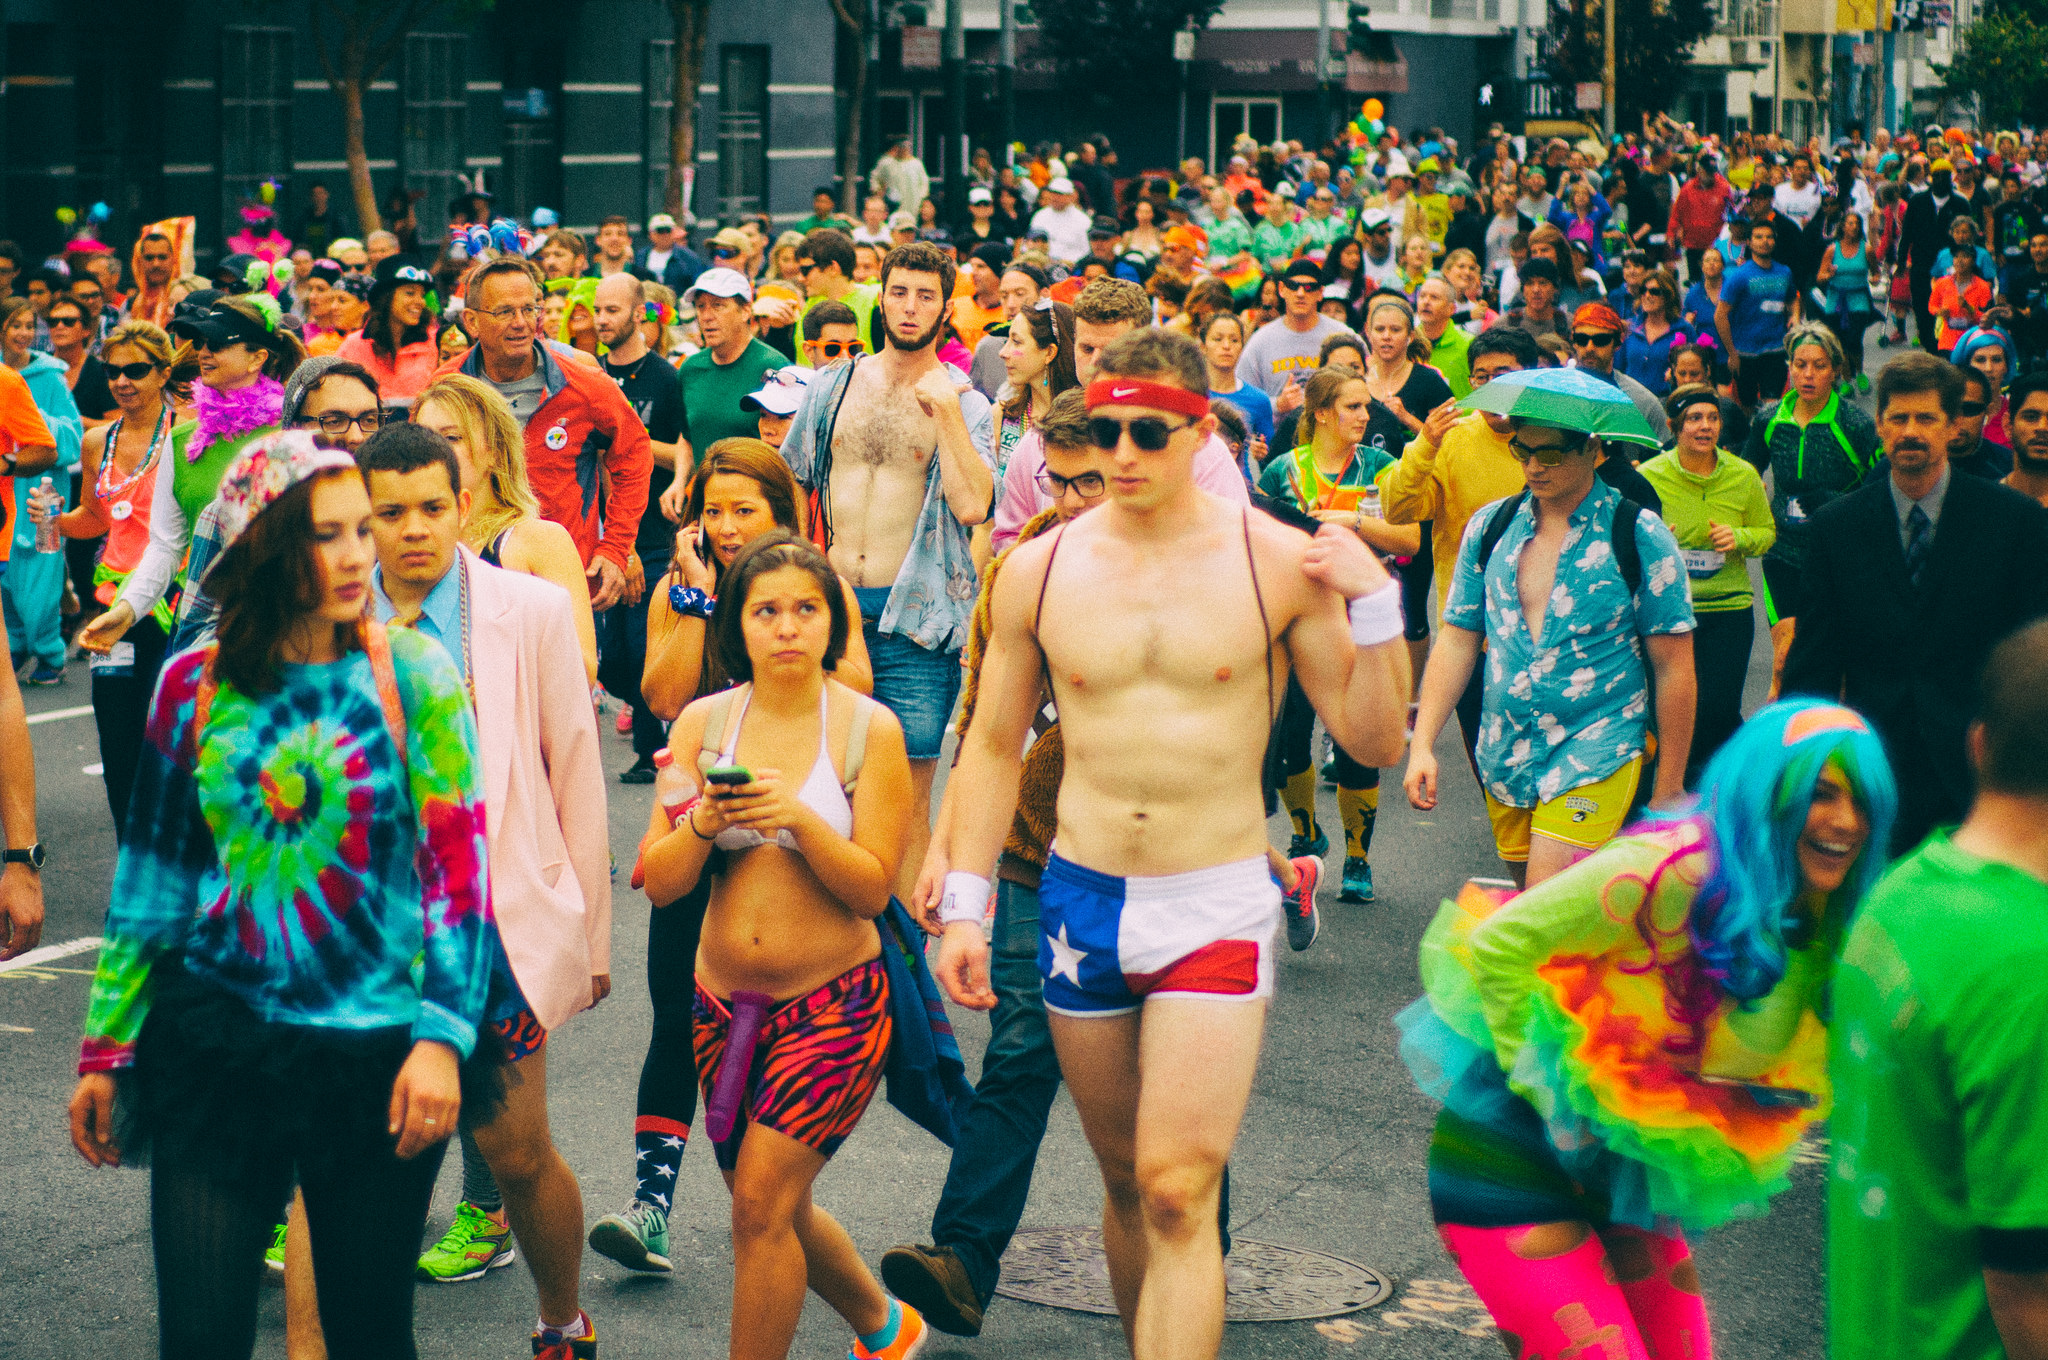 traffic alert: bay to breakers street closures, reroutes to hit city